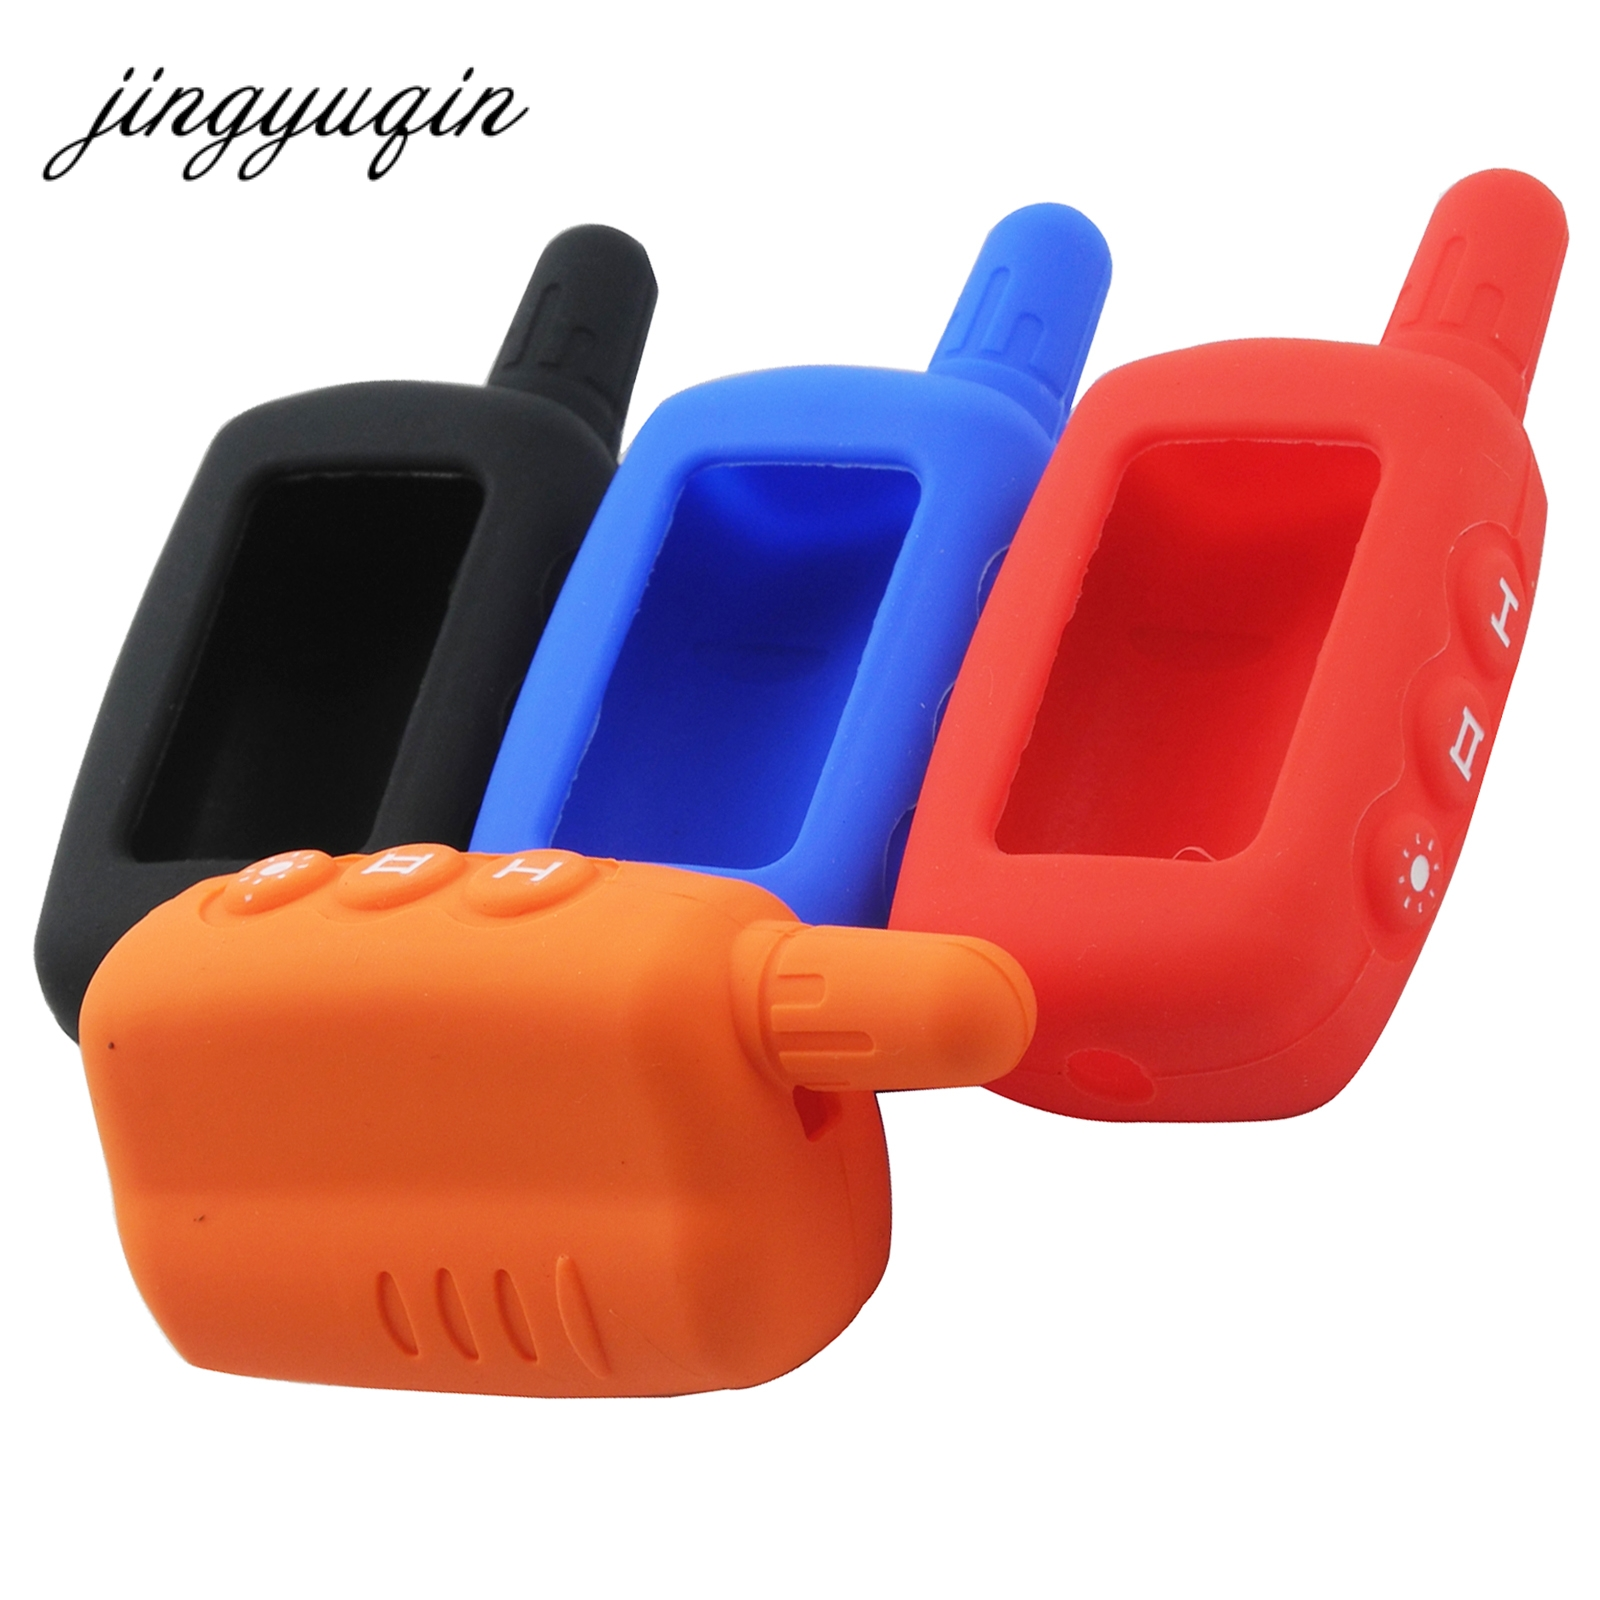 jingyuqin Silicone Key Case for Starline A6 A9 A8 Two Way Car Alarm LCD Remote Controller keychain Cover free shipping a9 case keychain for russian version starline a9 a8 a6 case keychain lcd two way car alarm system remote control